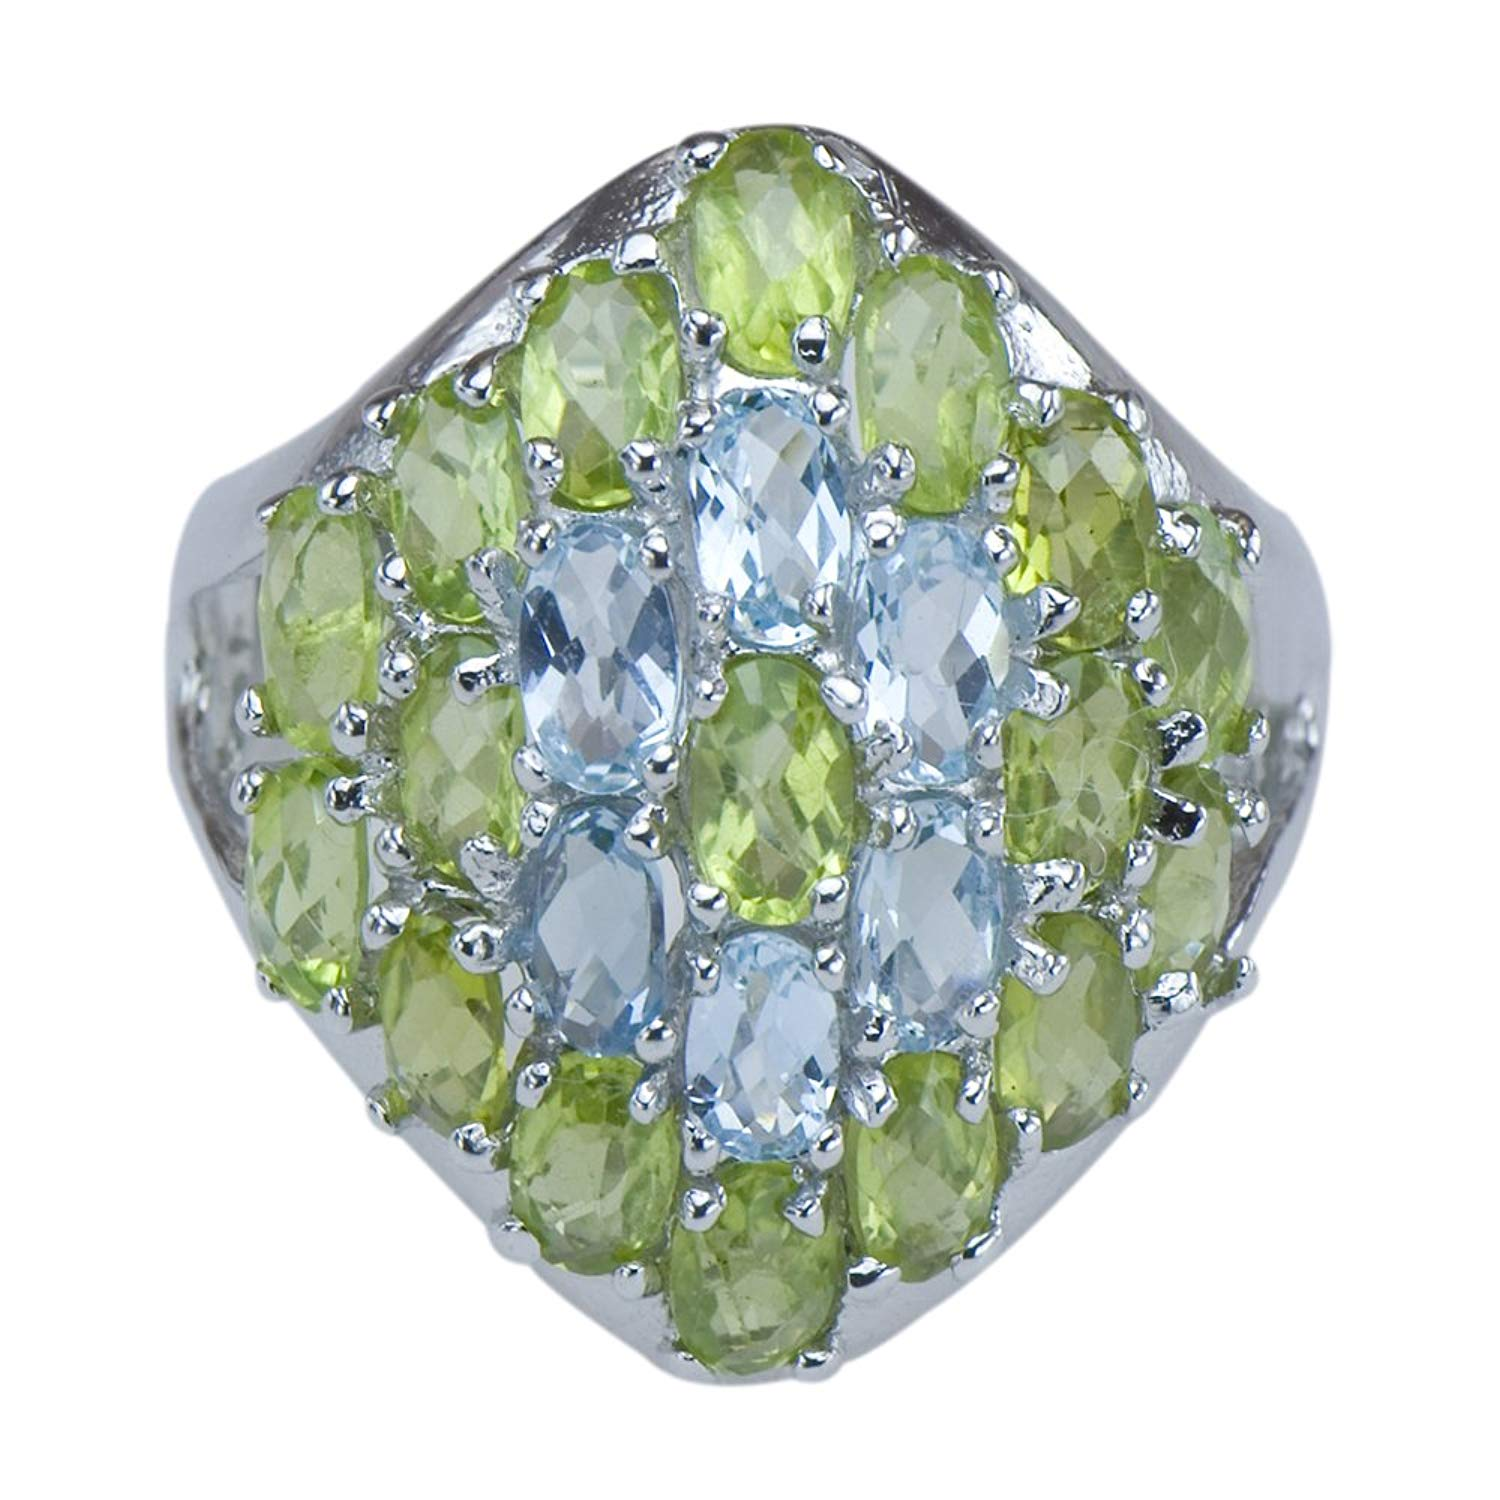 Caratera Fine Jewelry Dazzling Natural Topaz Peridot Gemstone 925 Sterling Silver Cluster Jewelry